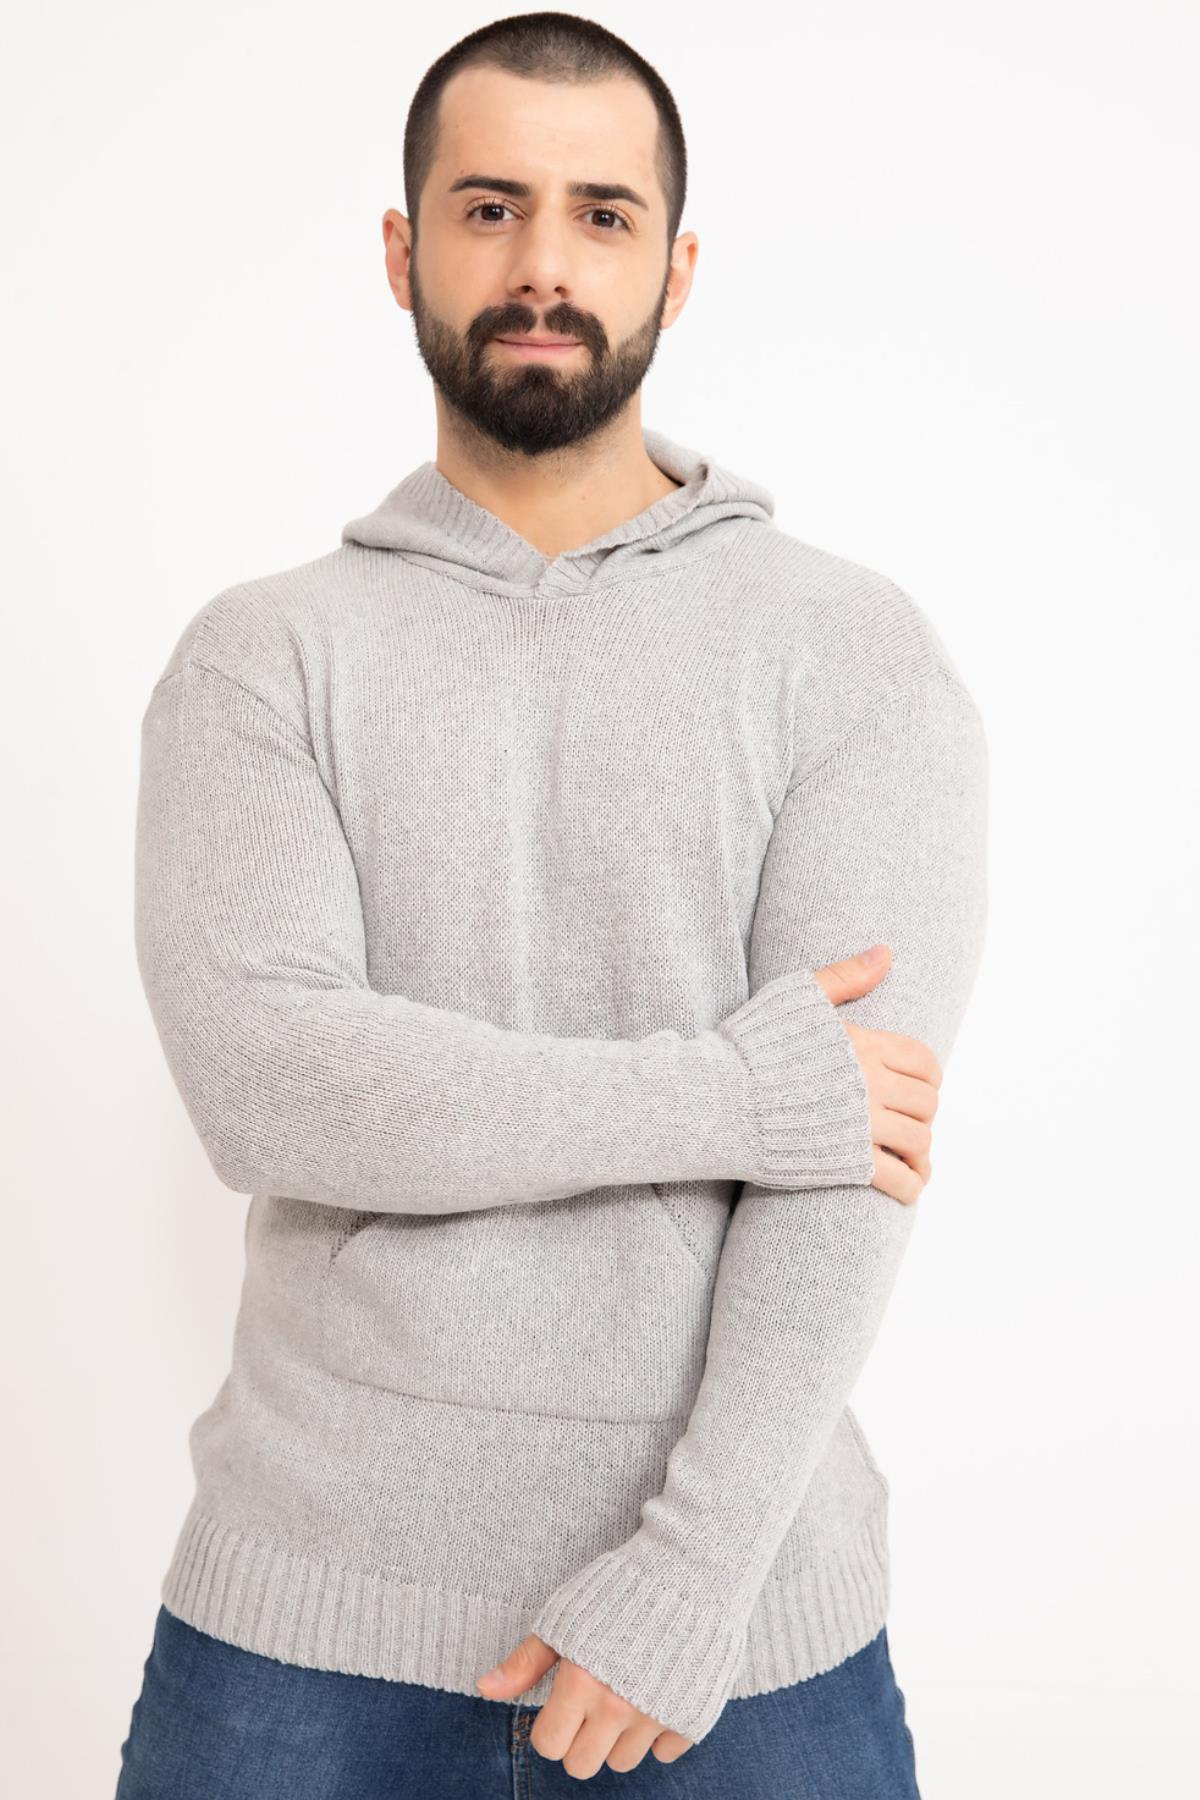 Grey Hooded Men's Knitwear Sweater